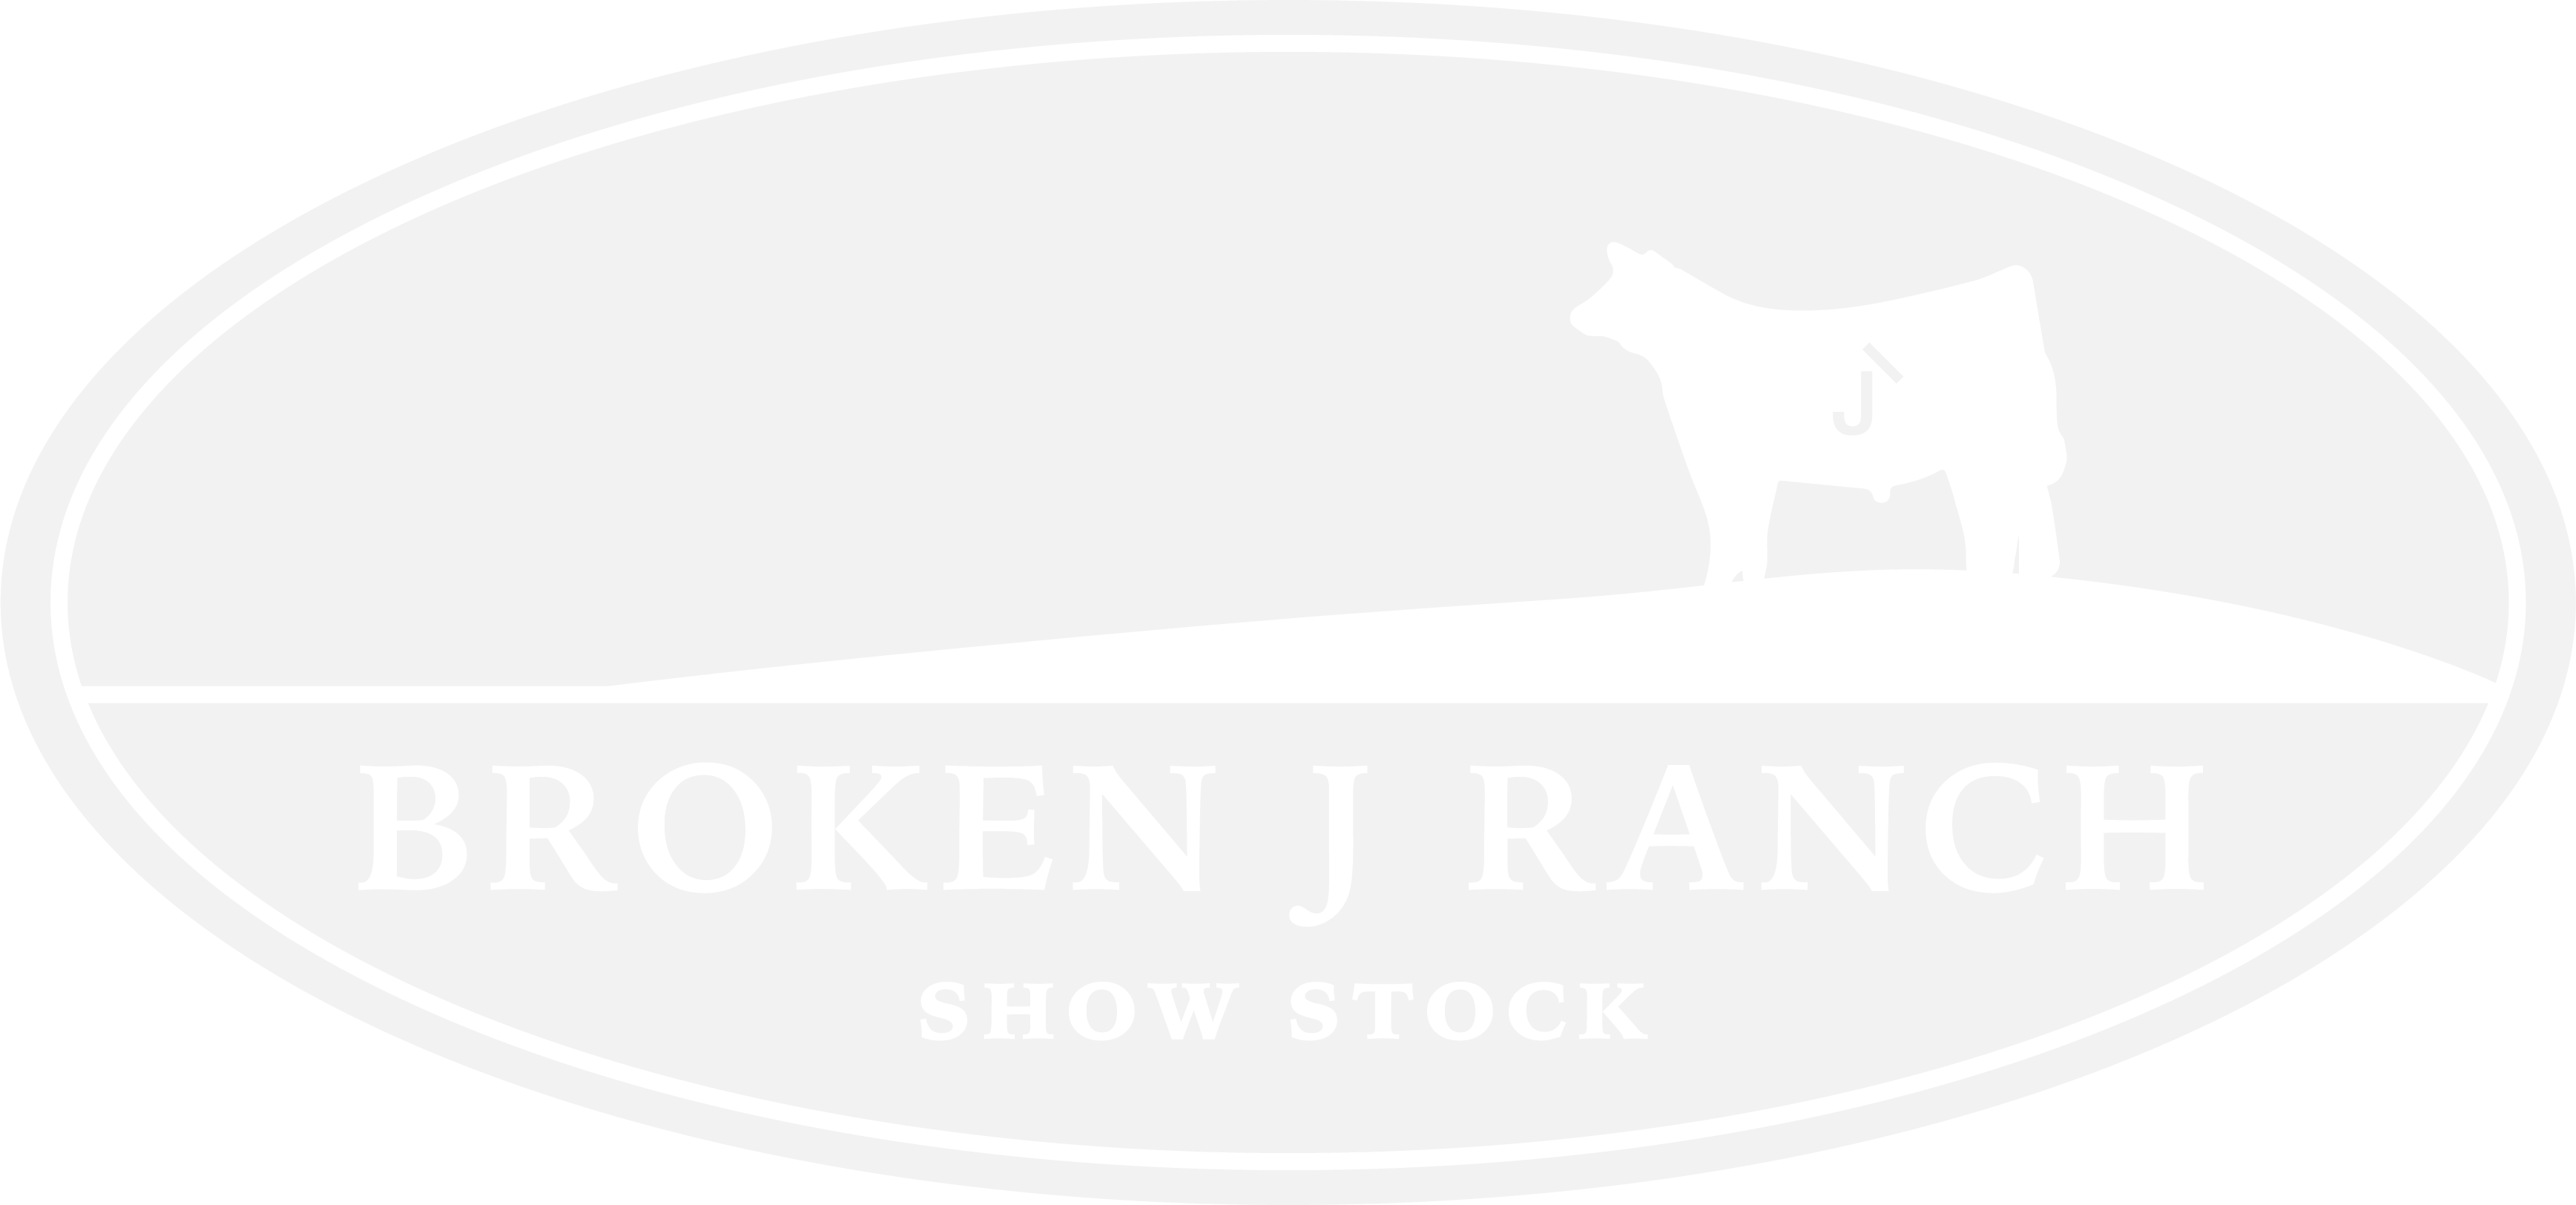 Broken J Ranch